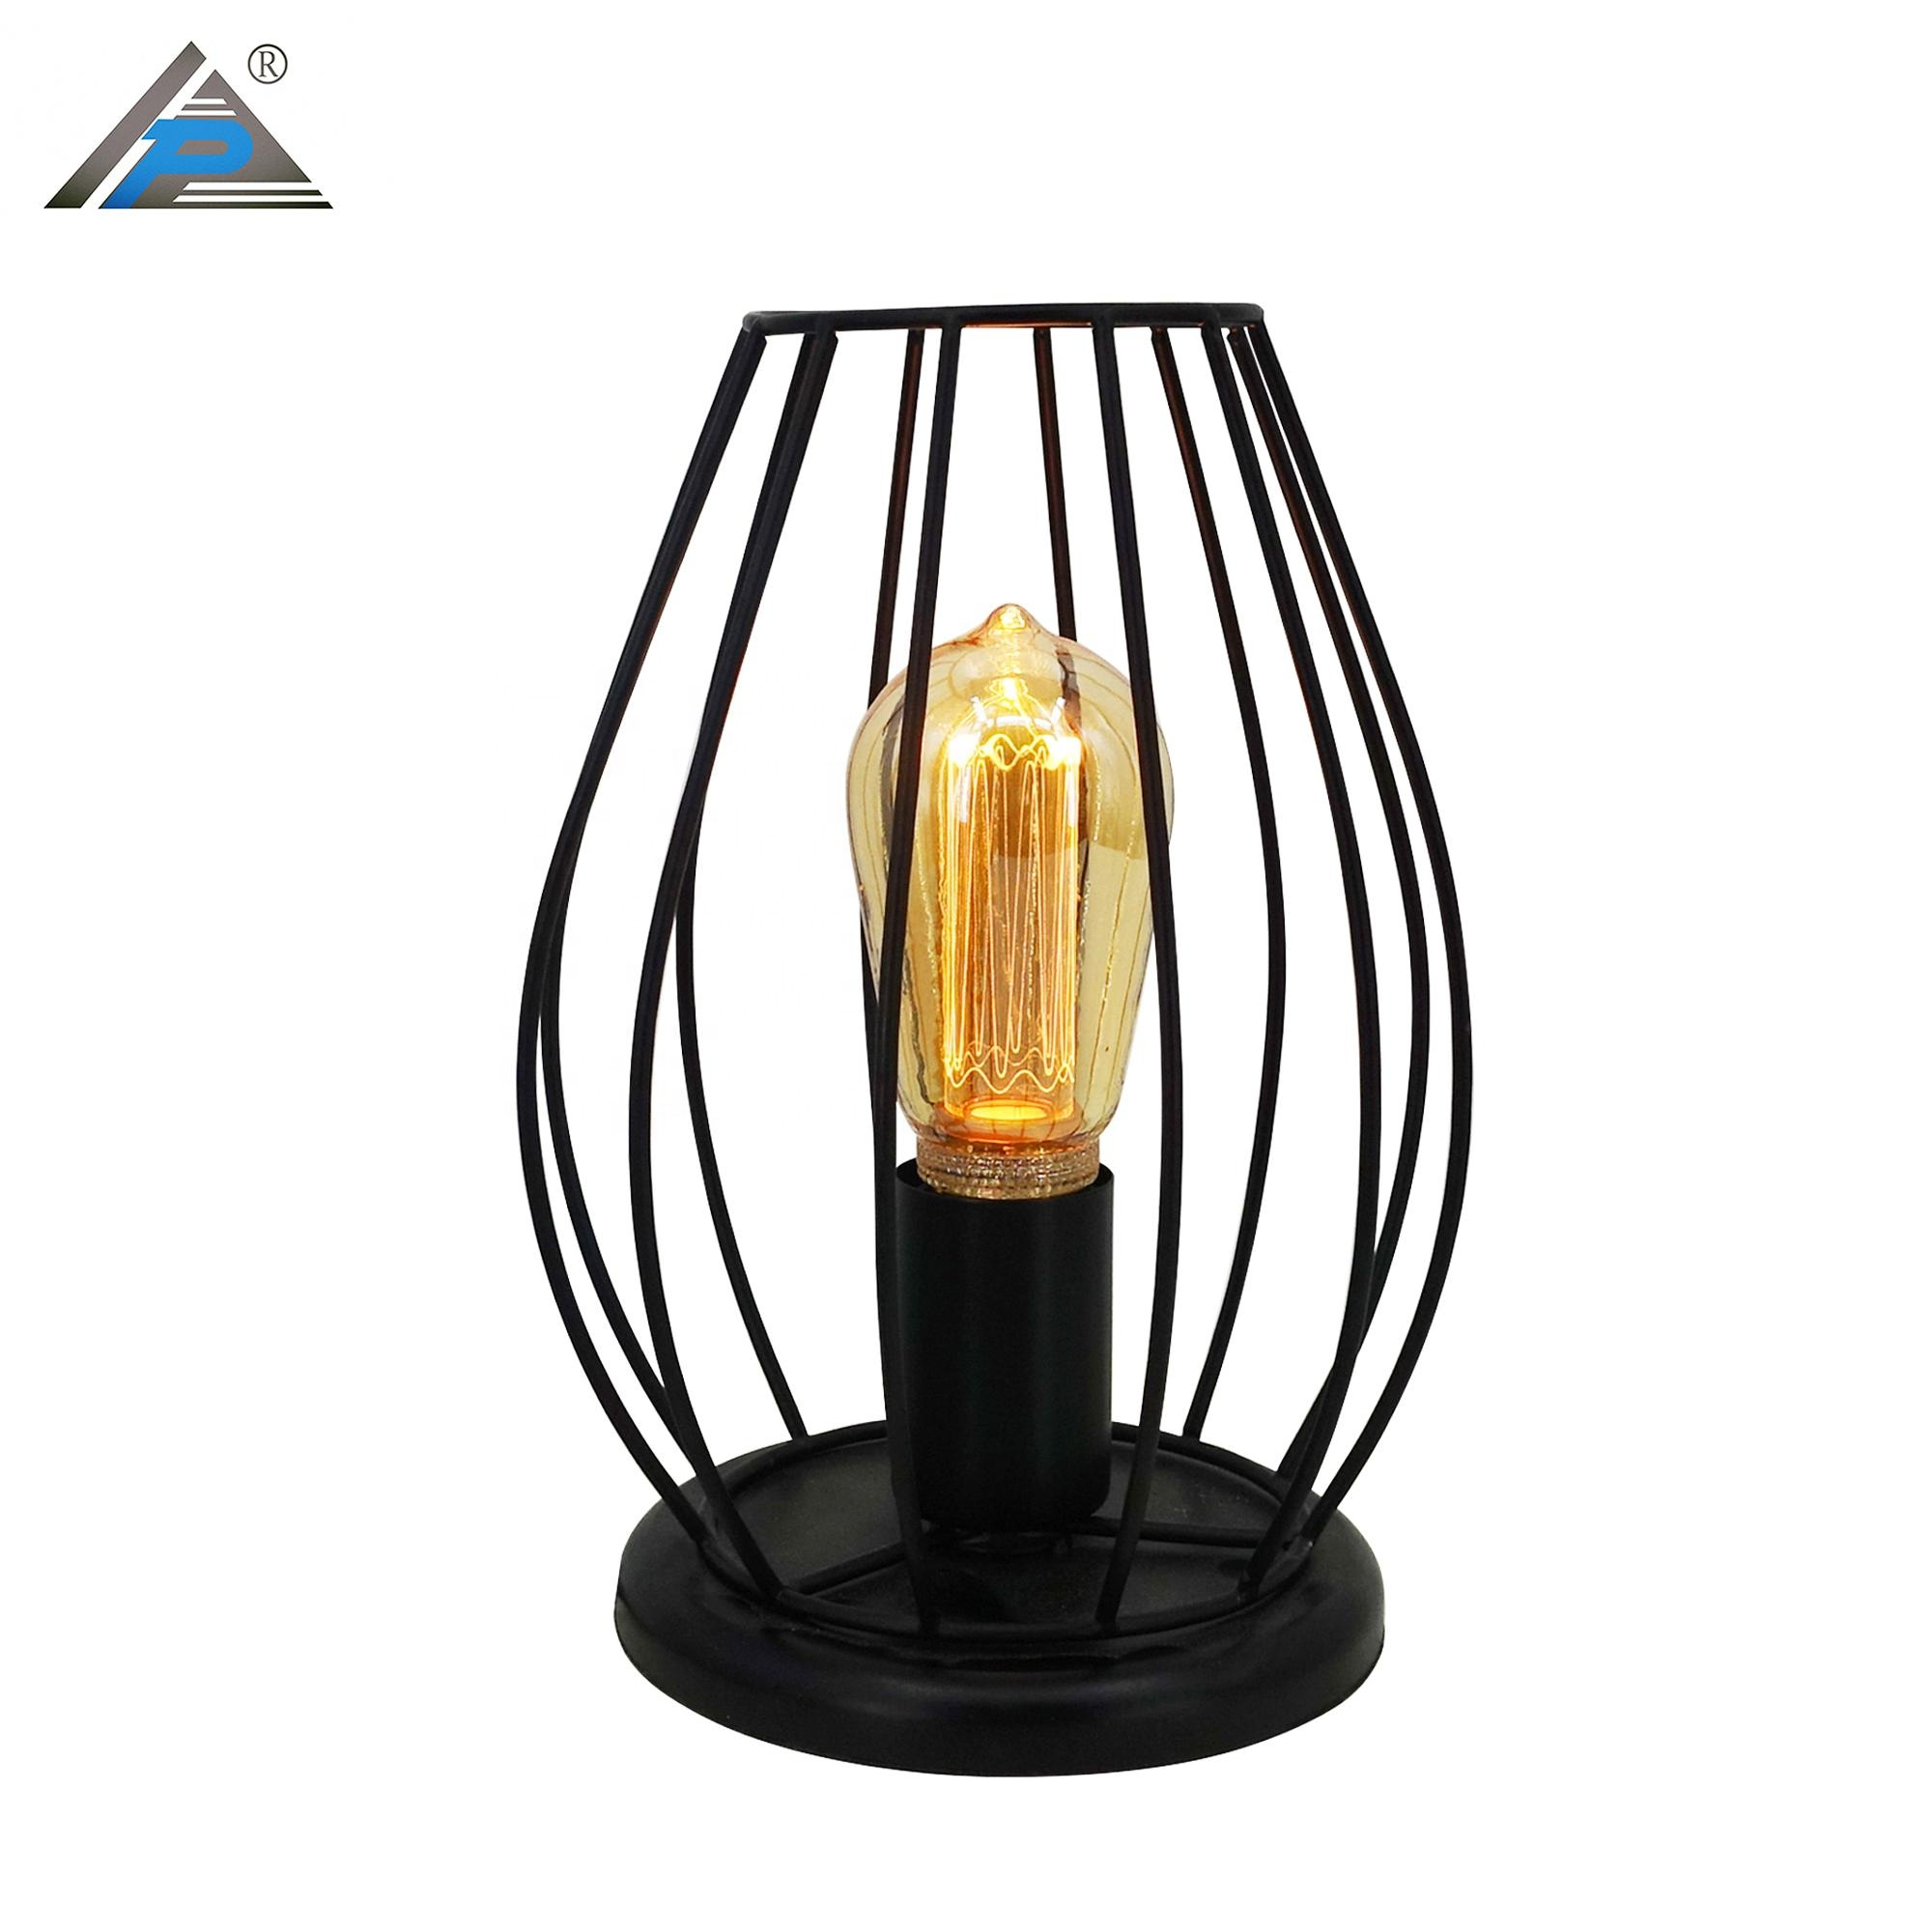 Modern Wood Base Iron Table Lamp with Cage Lampshade Desktop Night Light for Living Room Office Cafe Restaurant